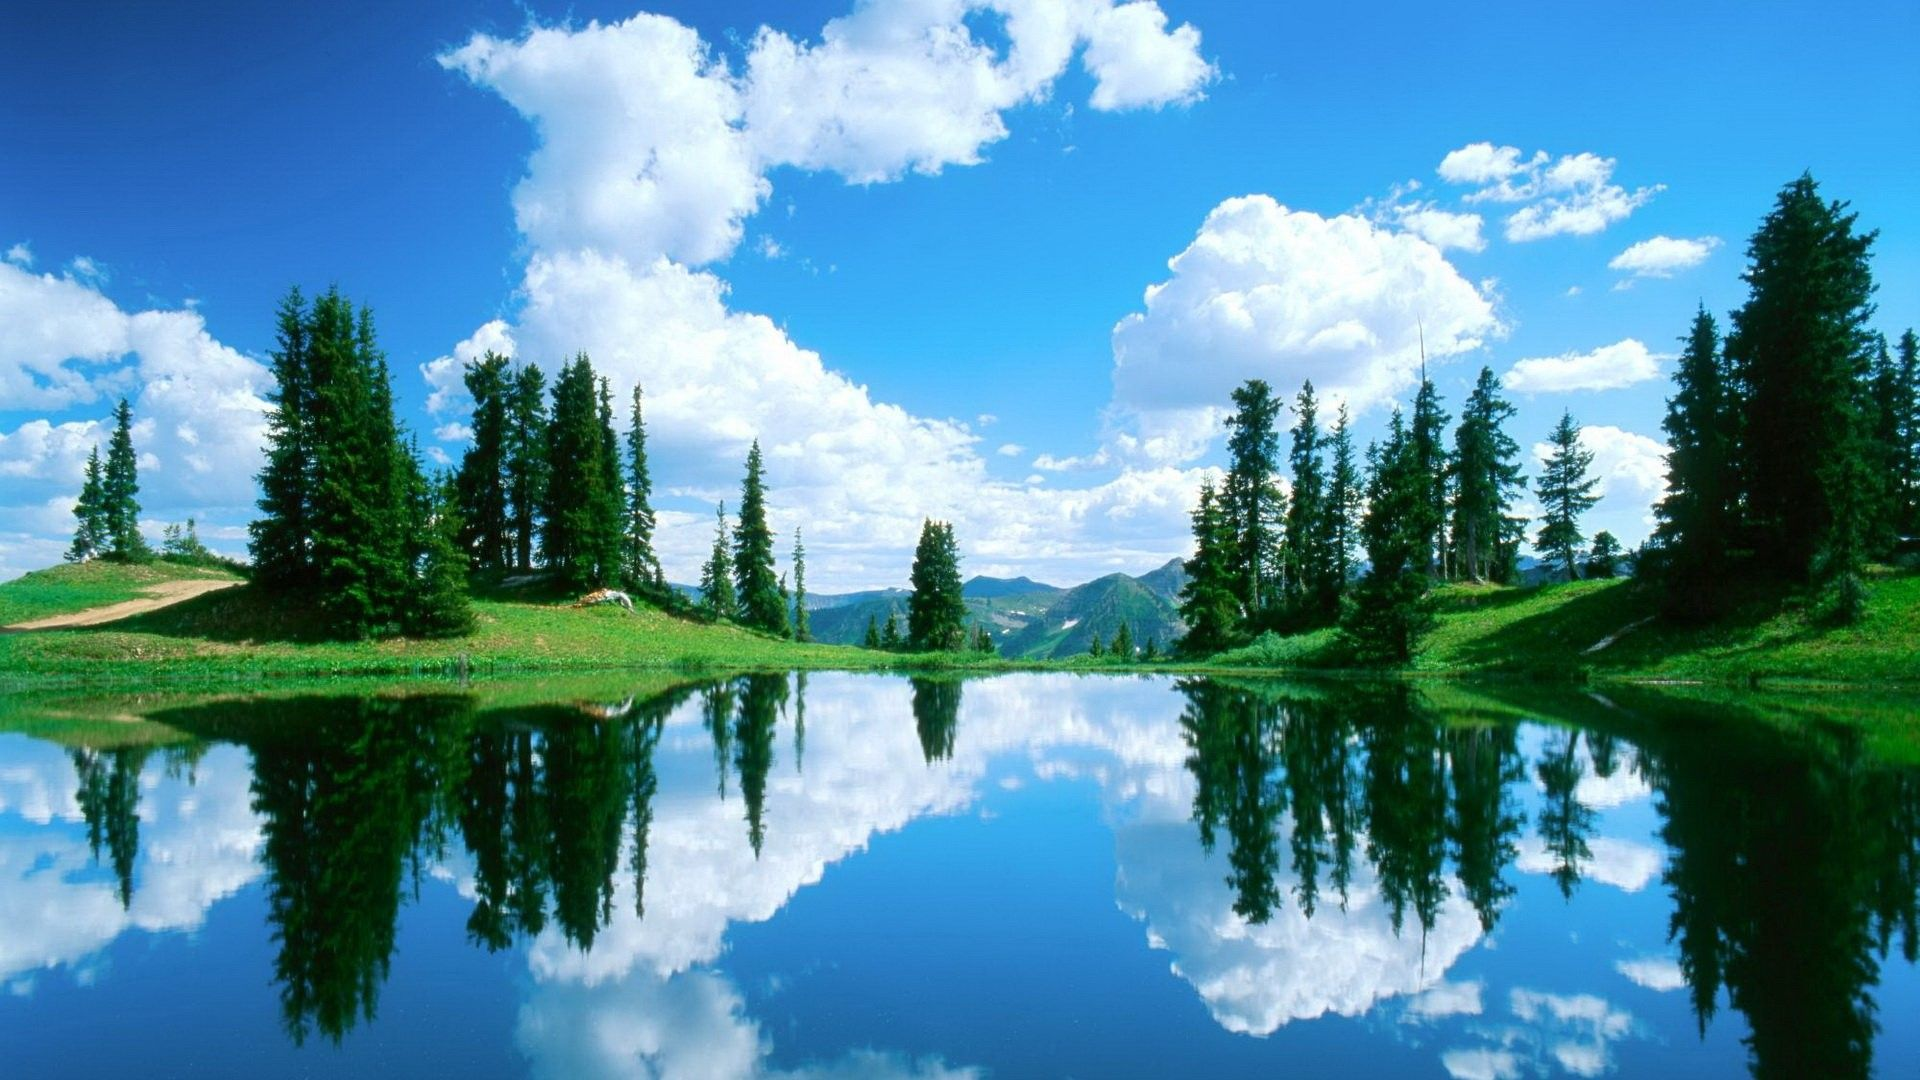 003344 Color Wallpapers Trees Mountain Forest Water Sky Ocean Hd Hd Nature Wallpapers Nature Wallpaper Beautiful Lakes